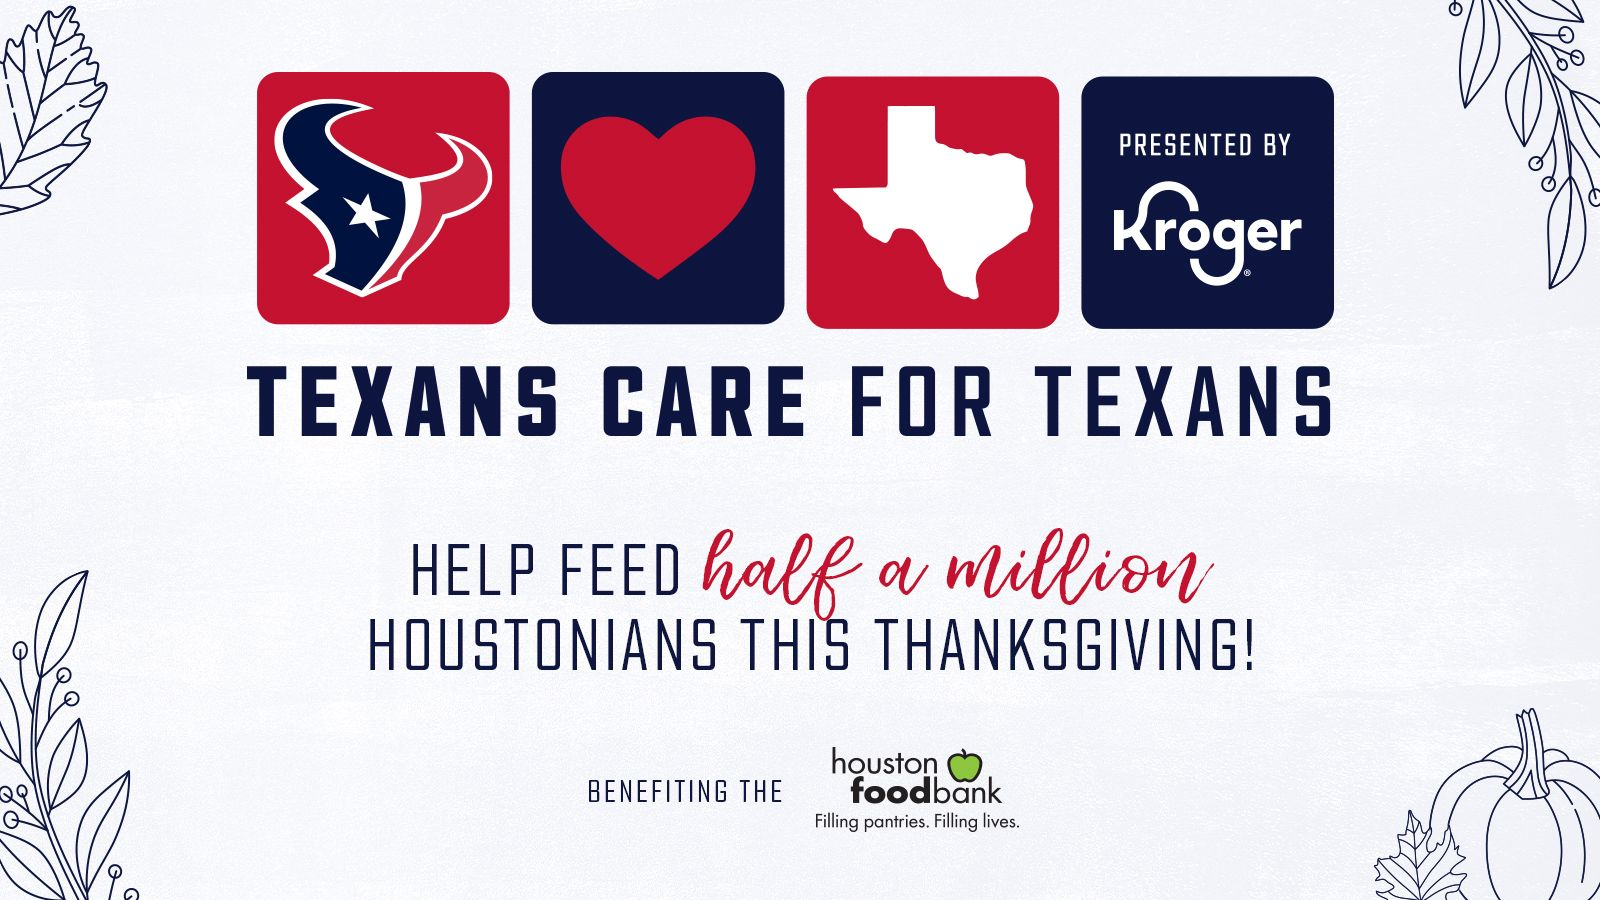 Texans Care for Texans